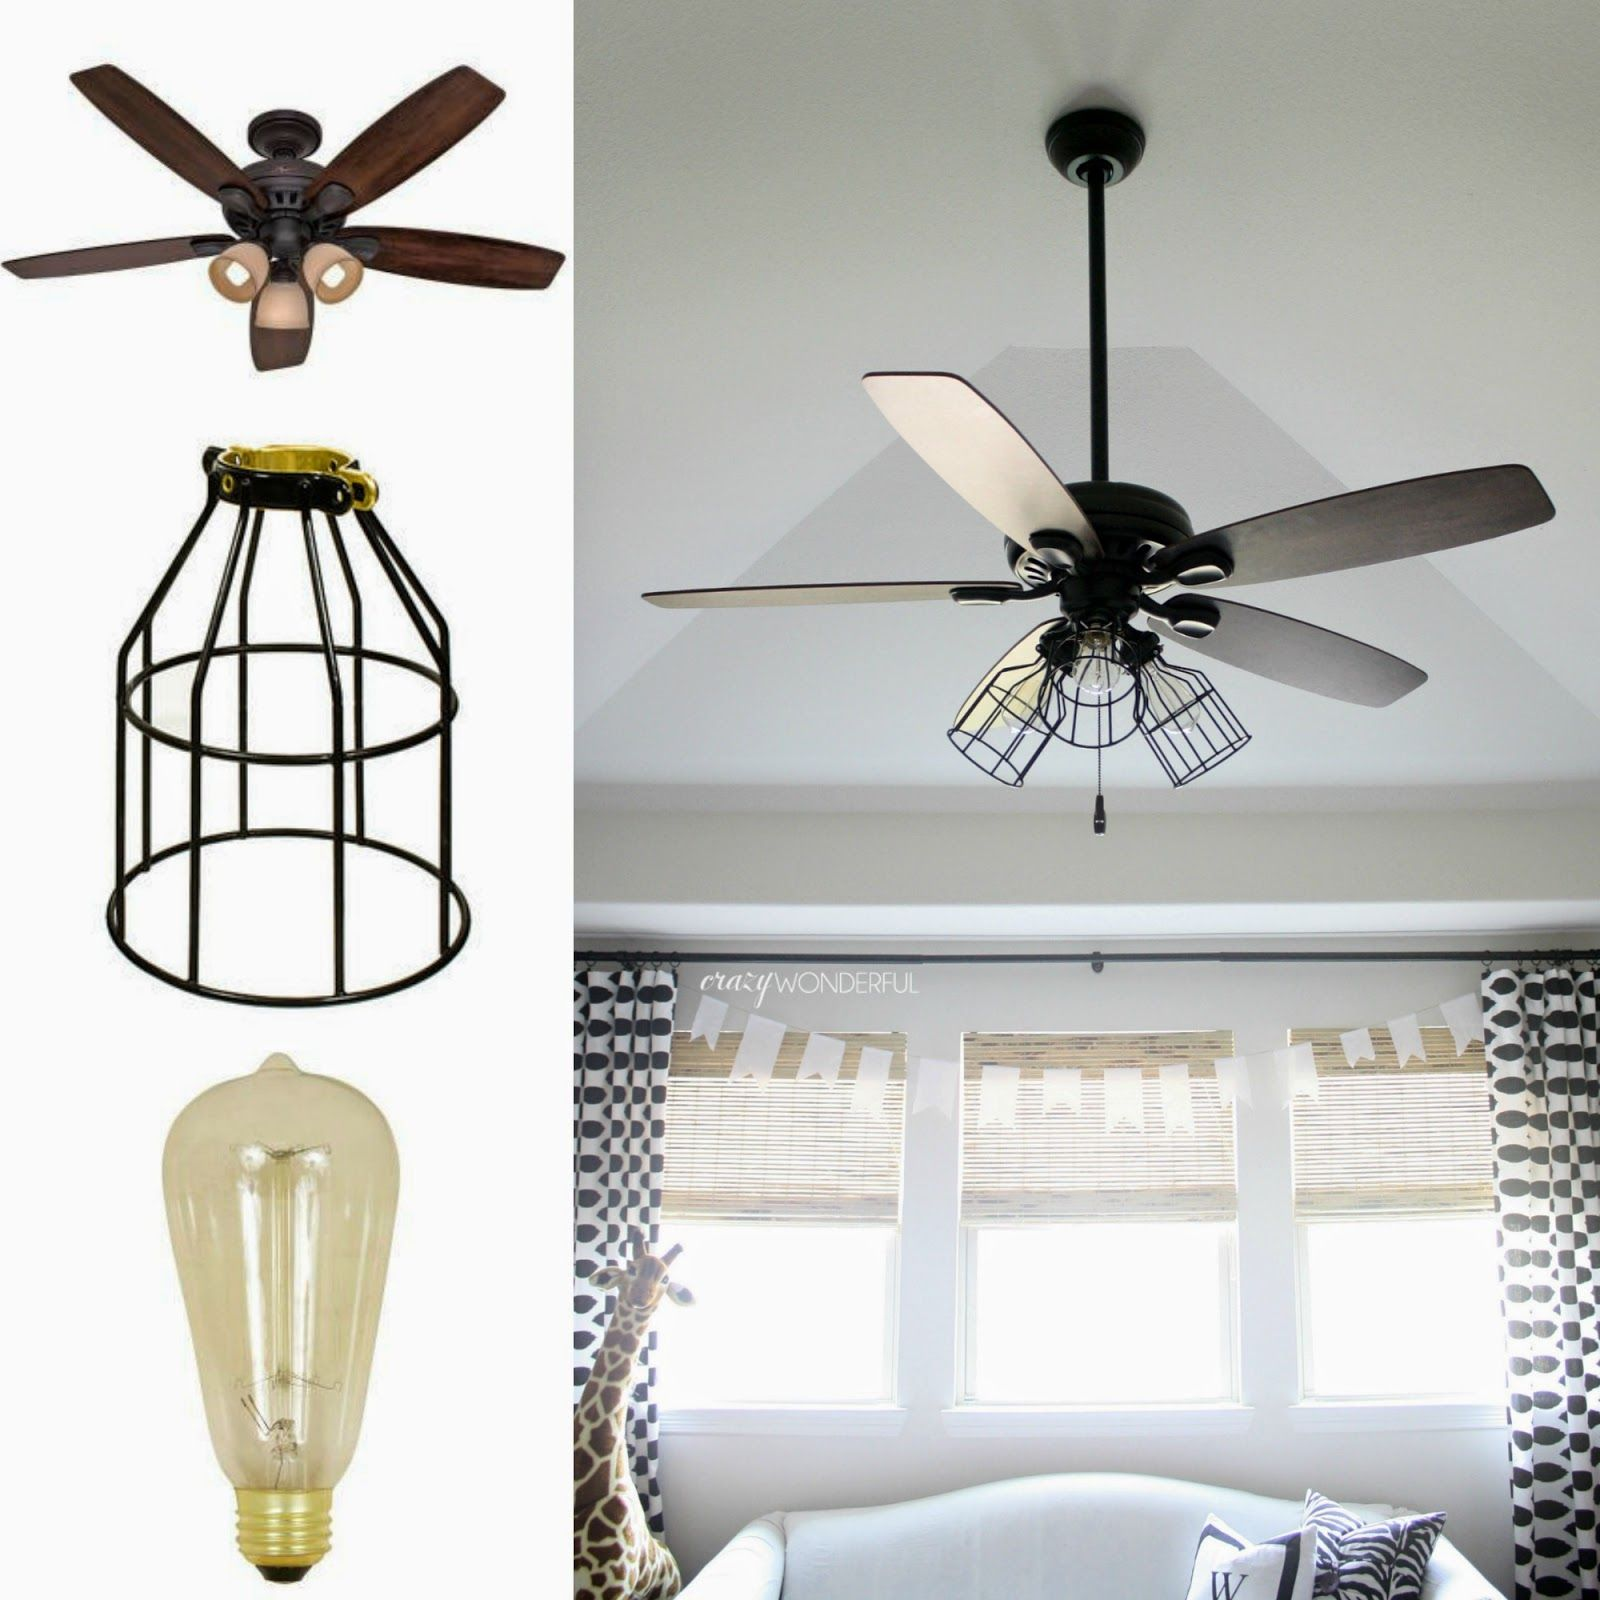 fan cool ceiling with fans style industrial ceilings light island kitchen